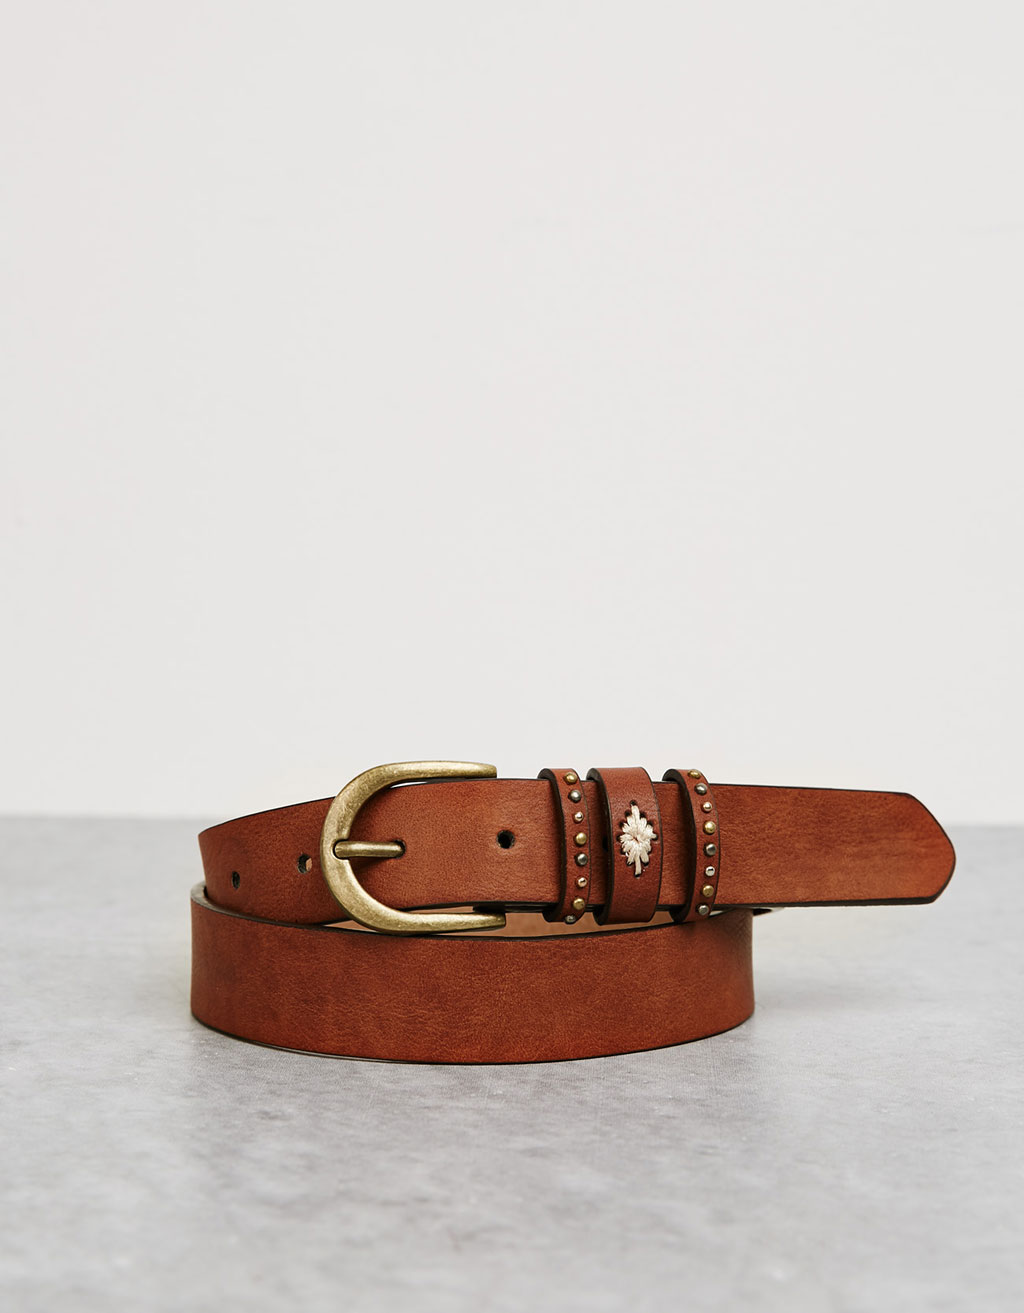 Beads and stitch detail belt